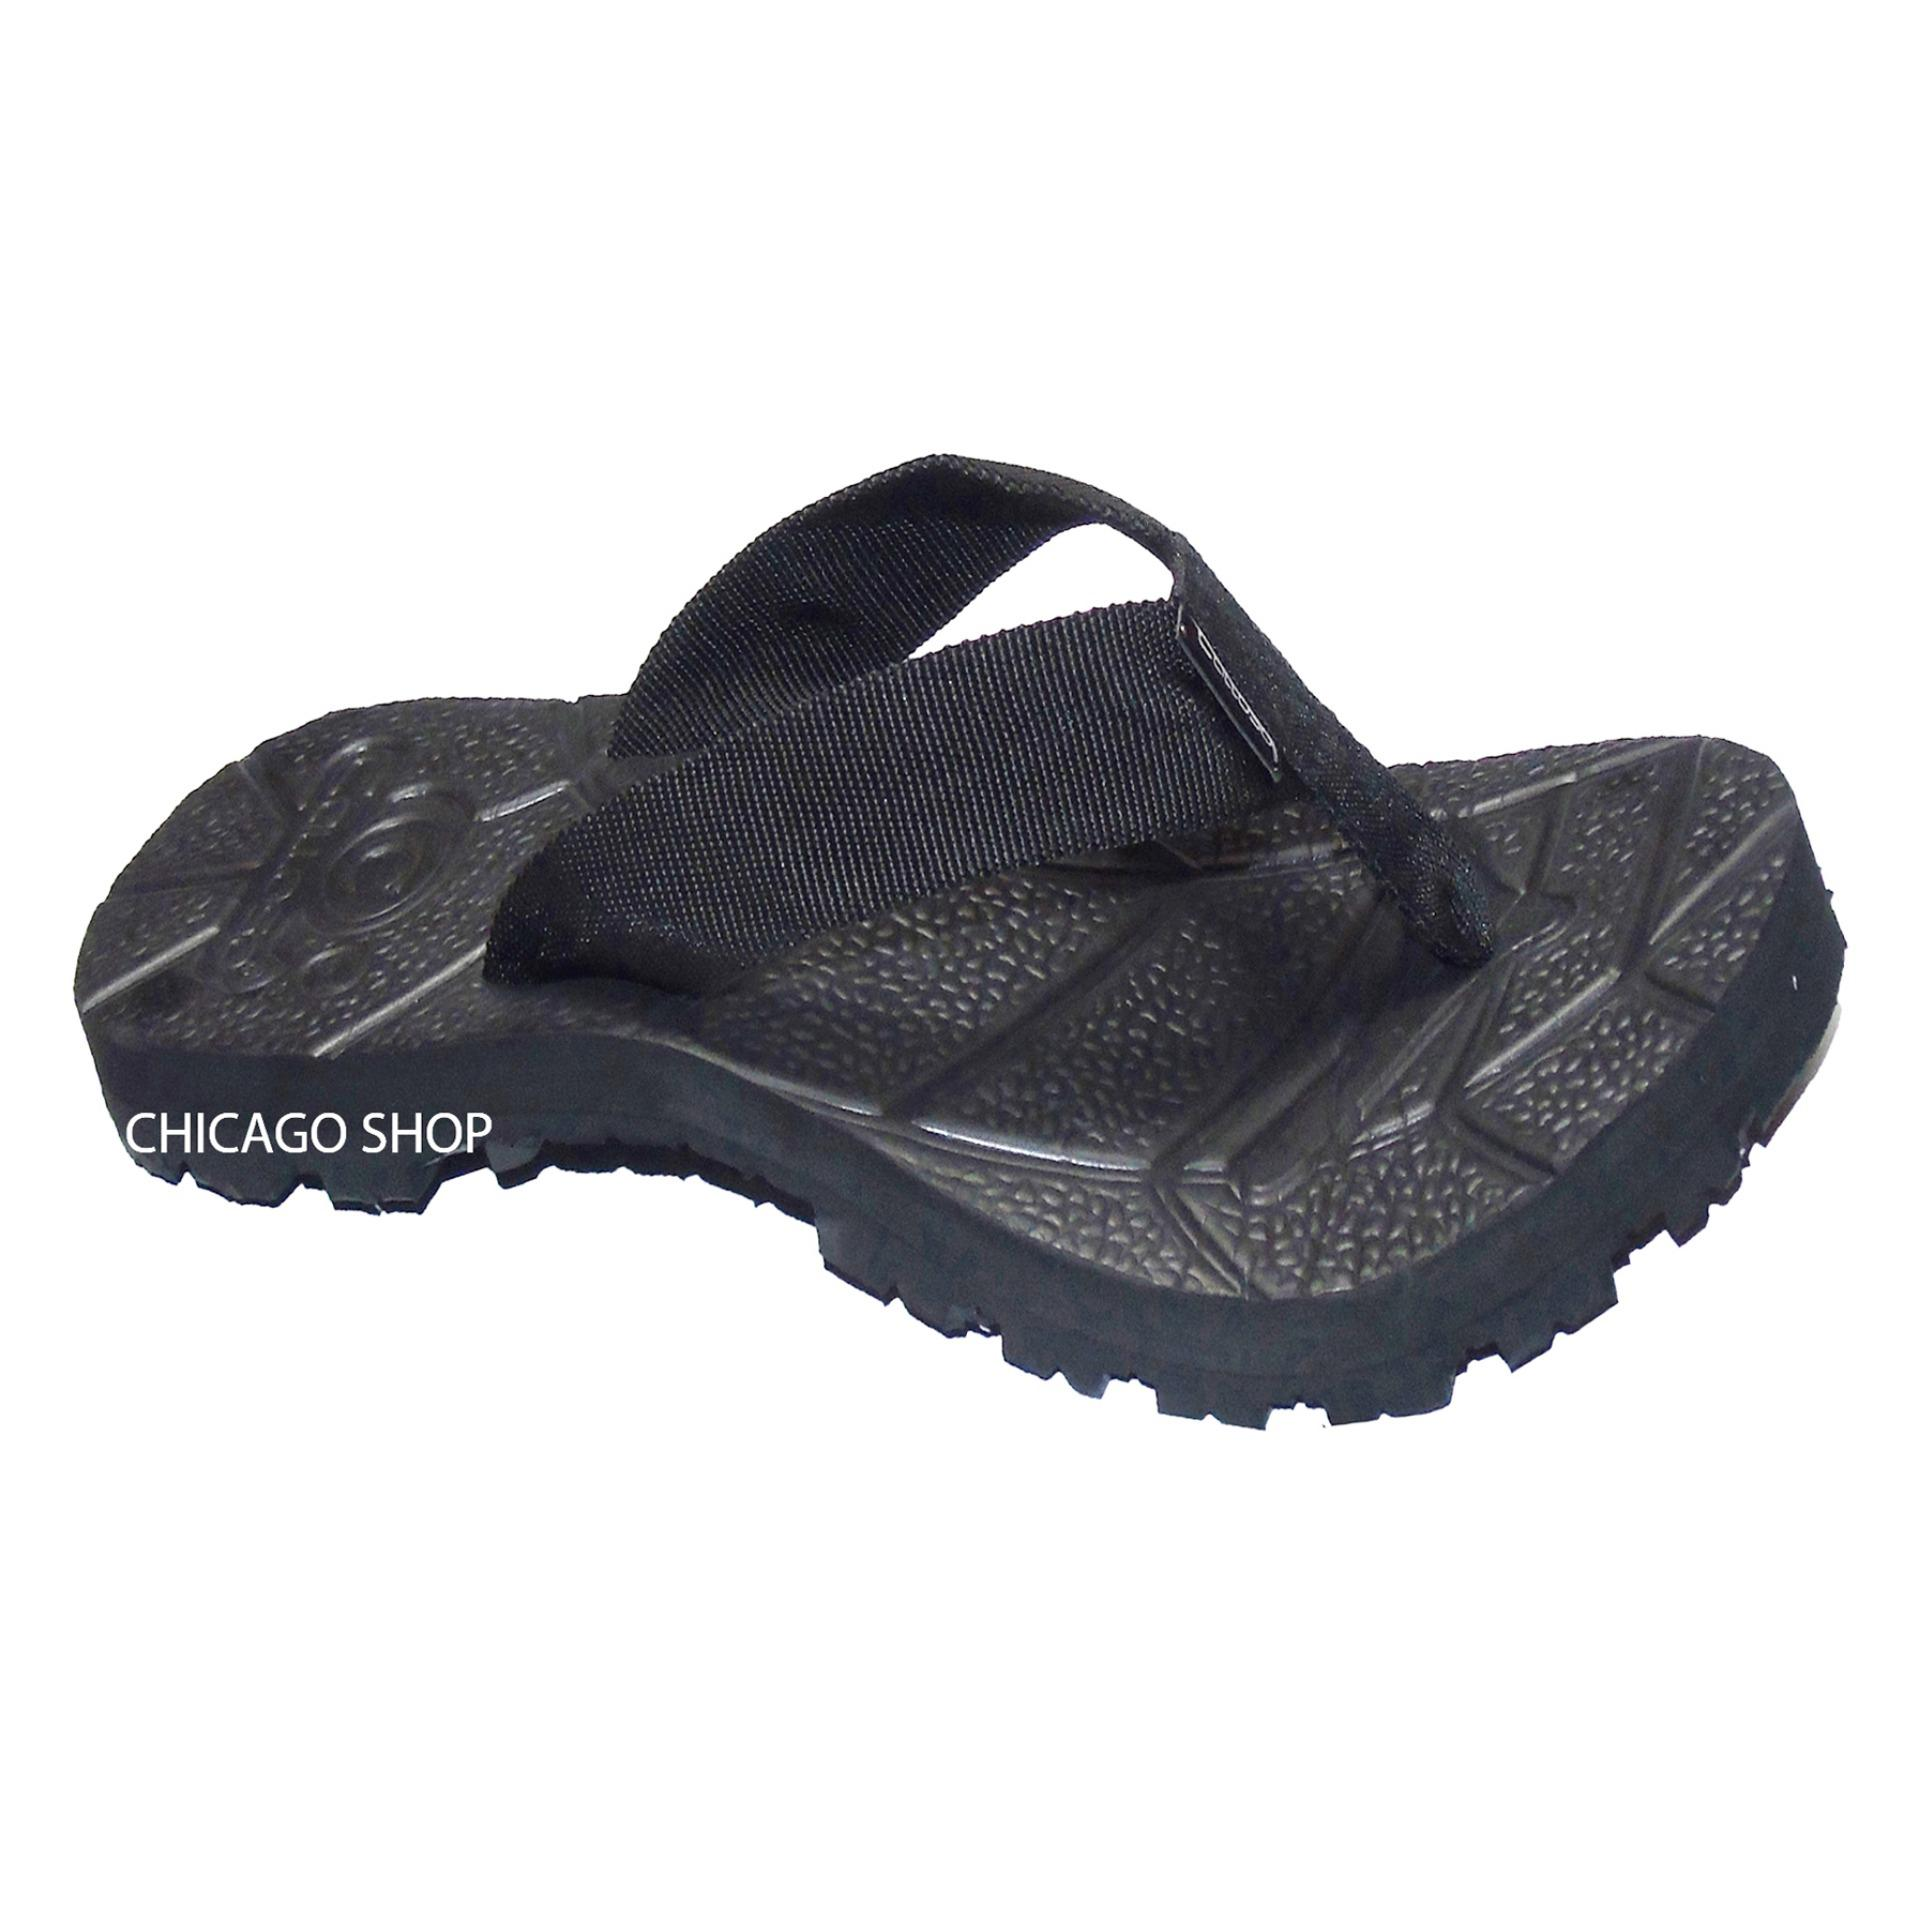 Spesifikasi Aldhino Collection Sandal Gunung Jp Ht Bagus